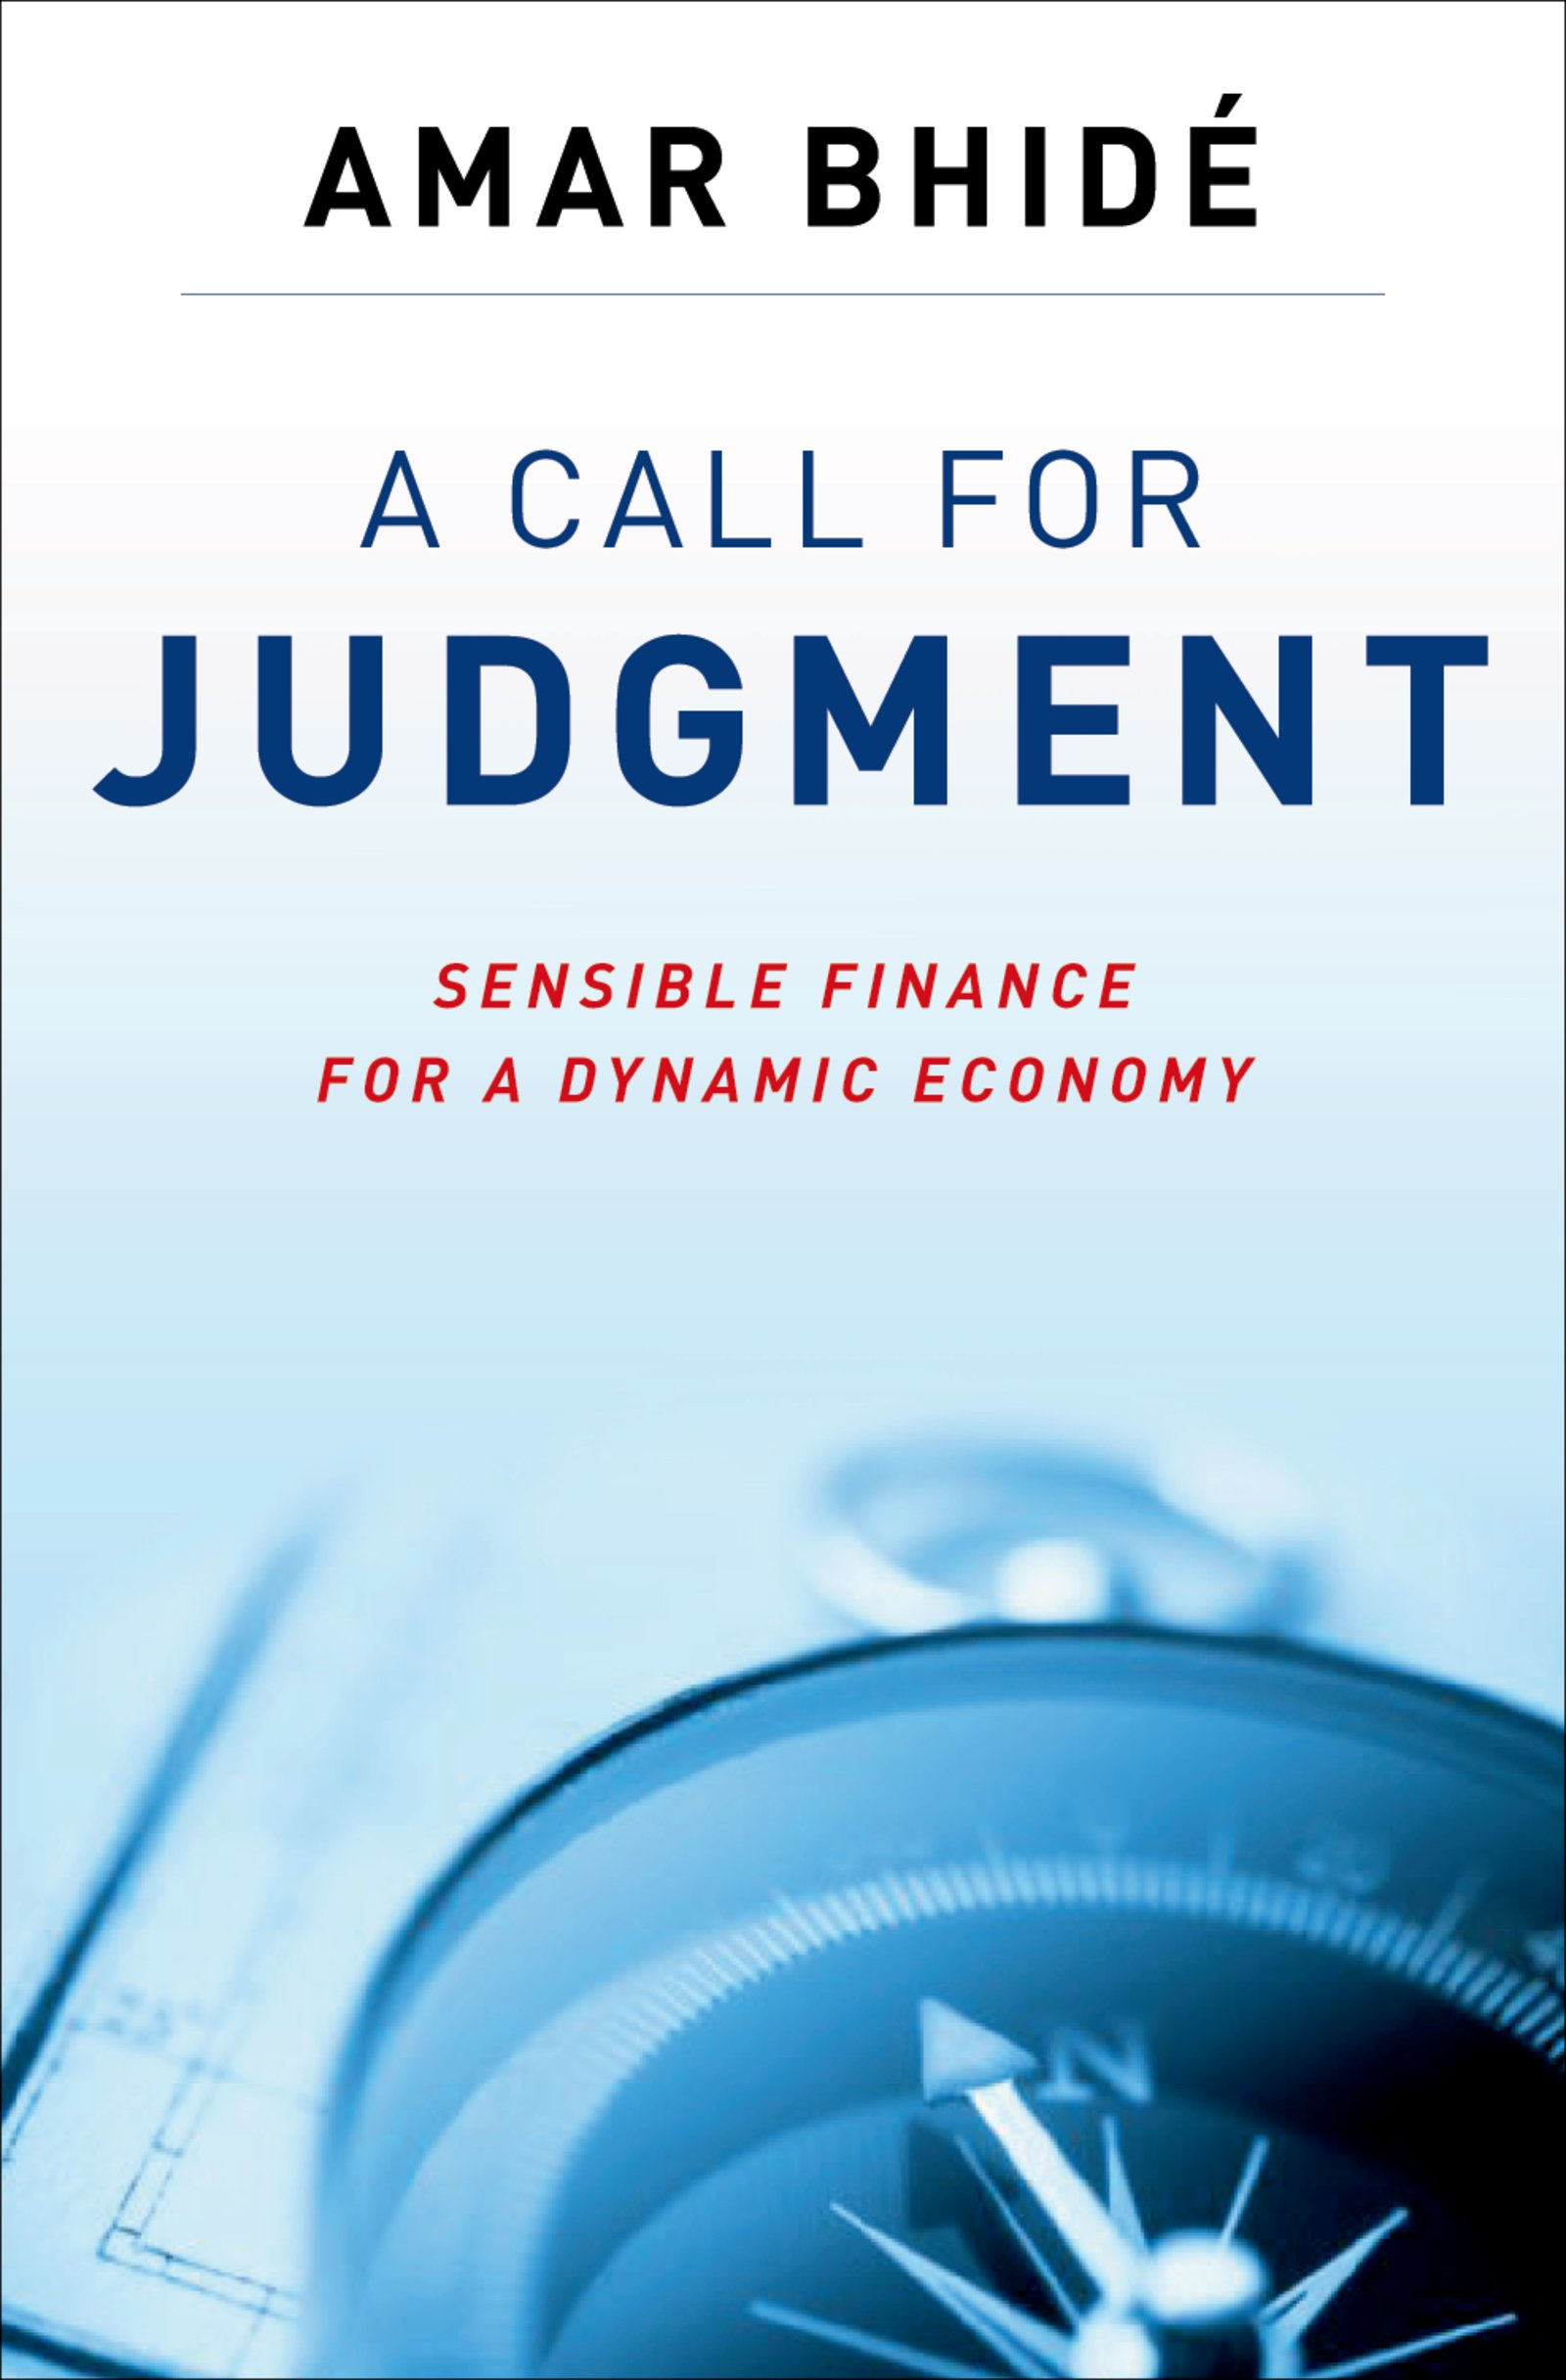 Download Ebook A Call for Judgment by Amar Bhide Pdf